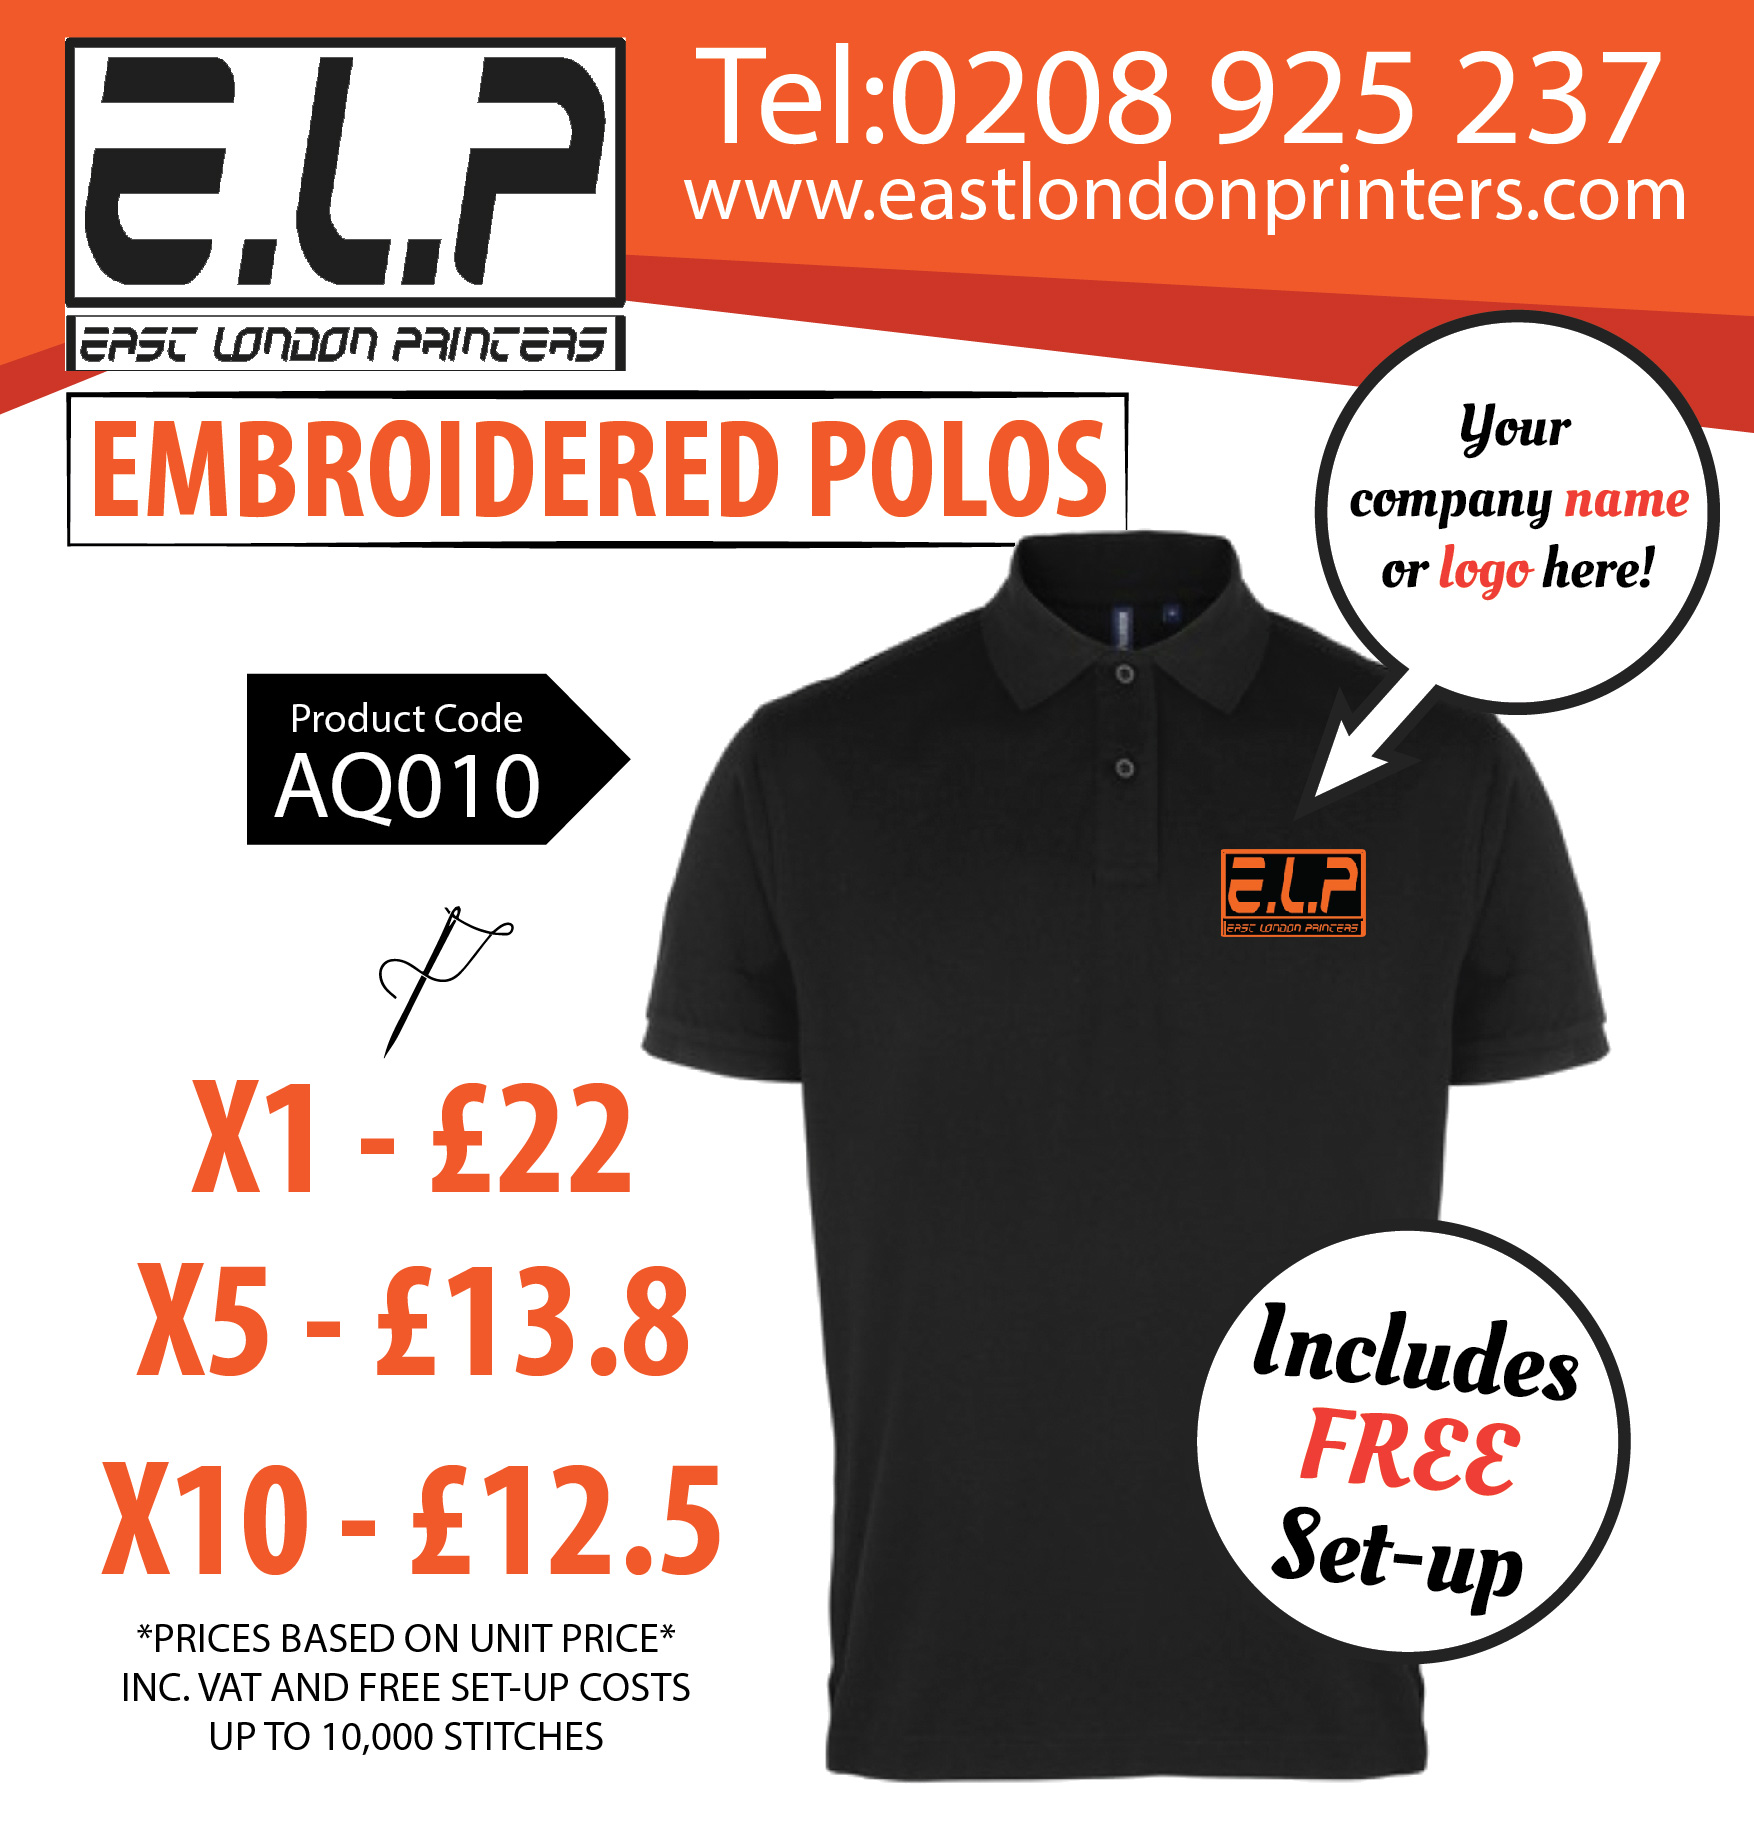 Customised Polo Shirts Polo Shirt Printing London